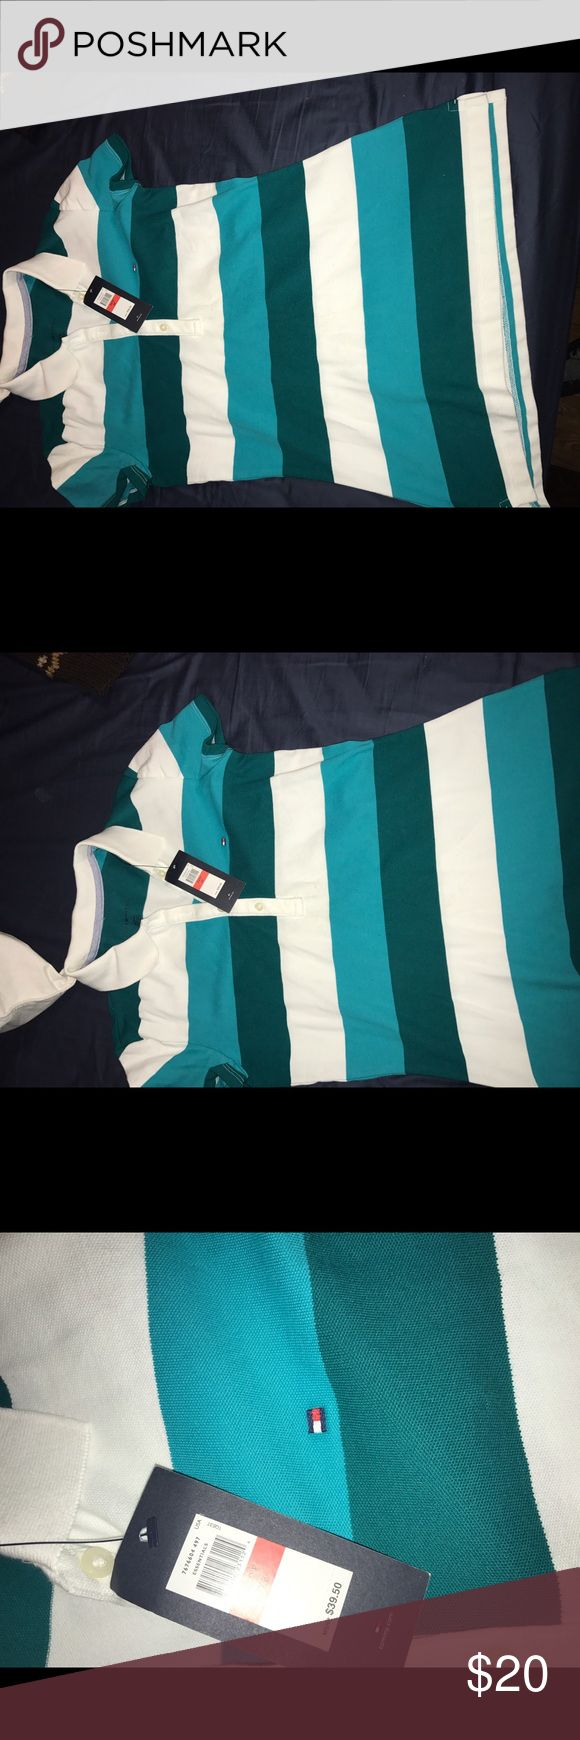 Kids small tommy shirt White blue and turquoise shirt Tommy Hilfiger Shirts & Tops Polos